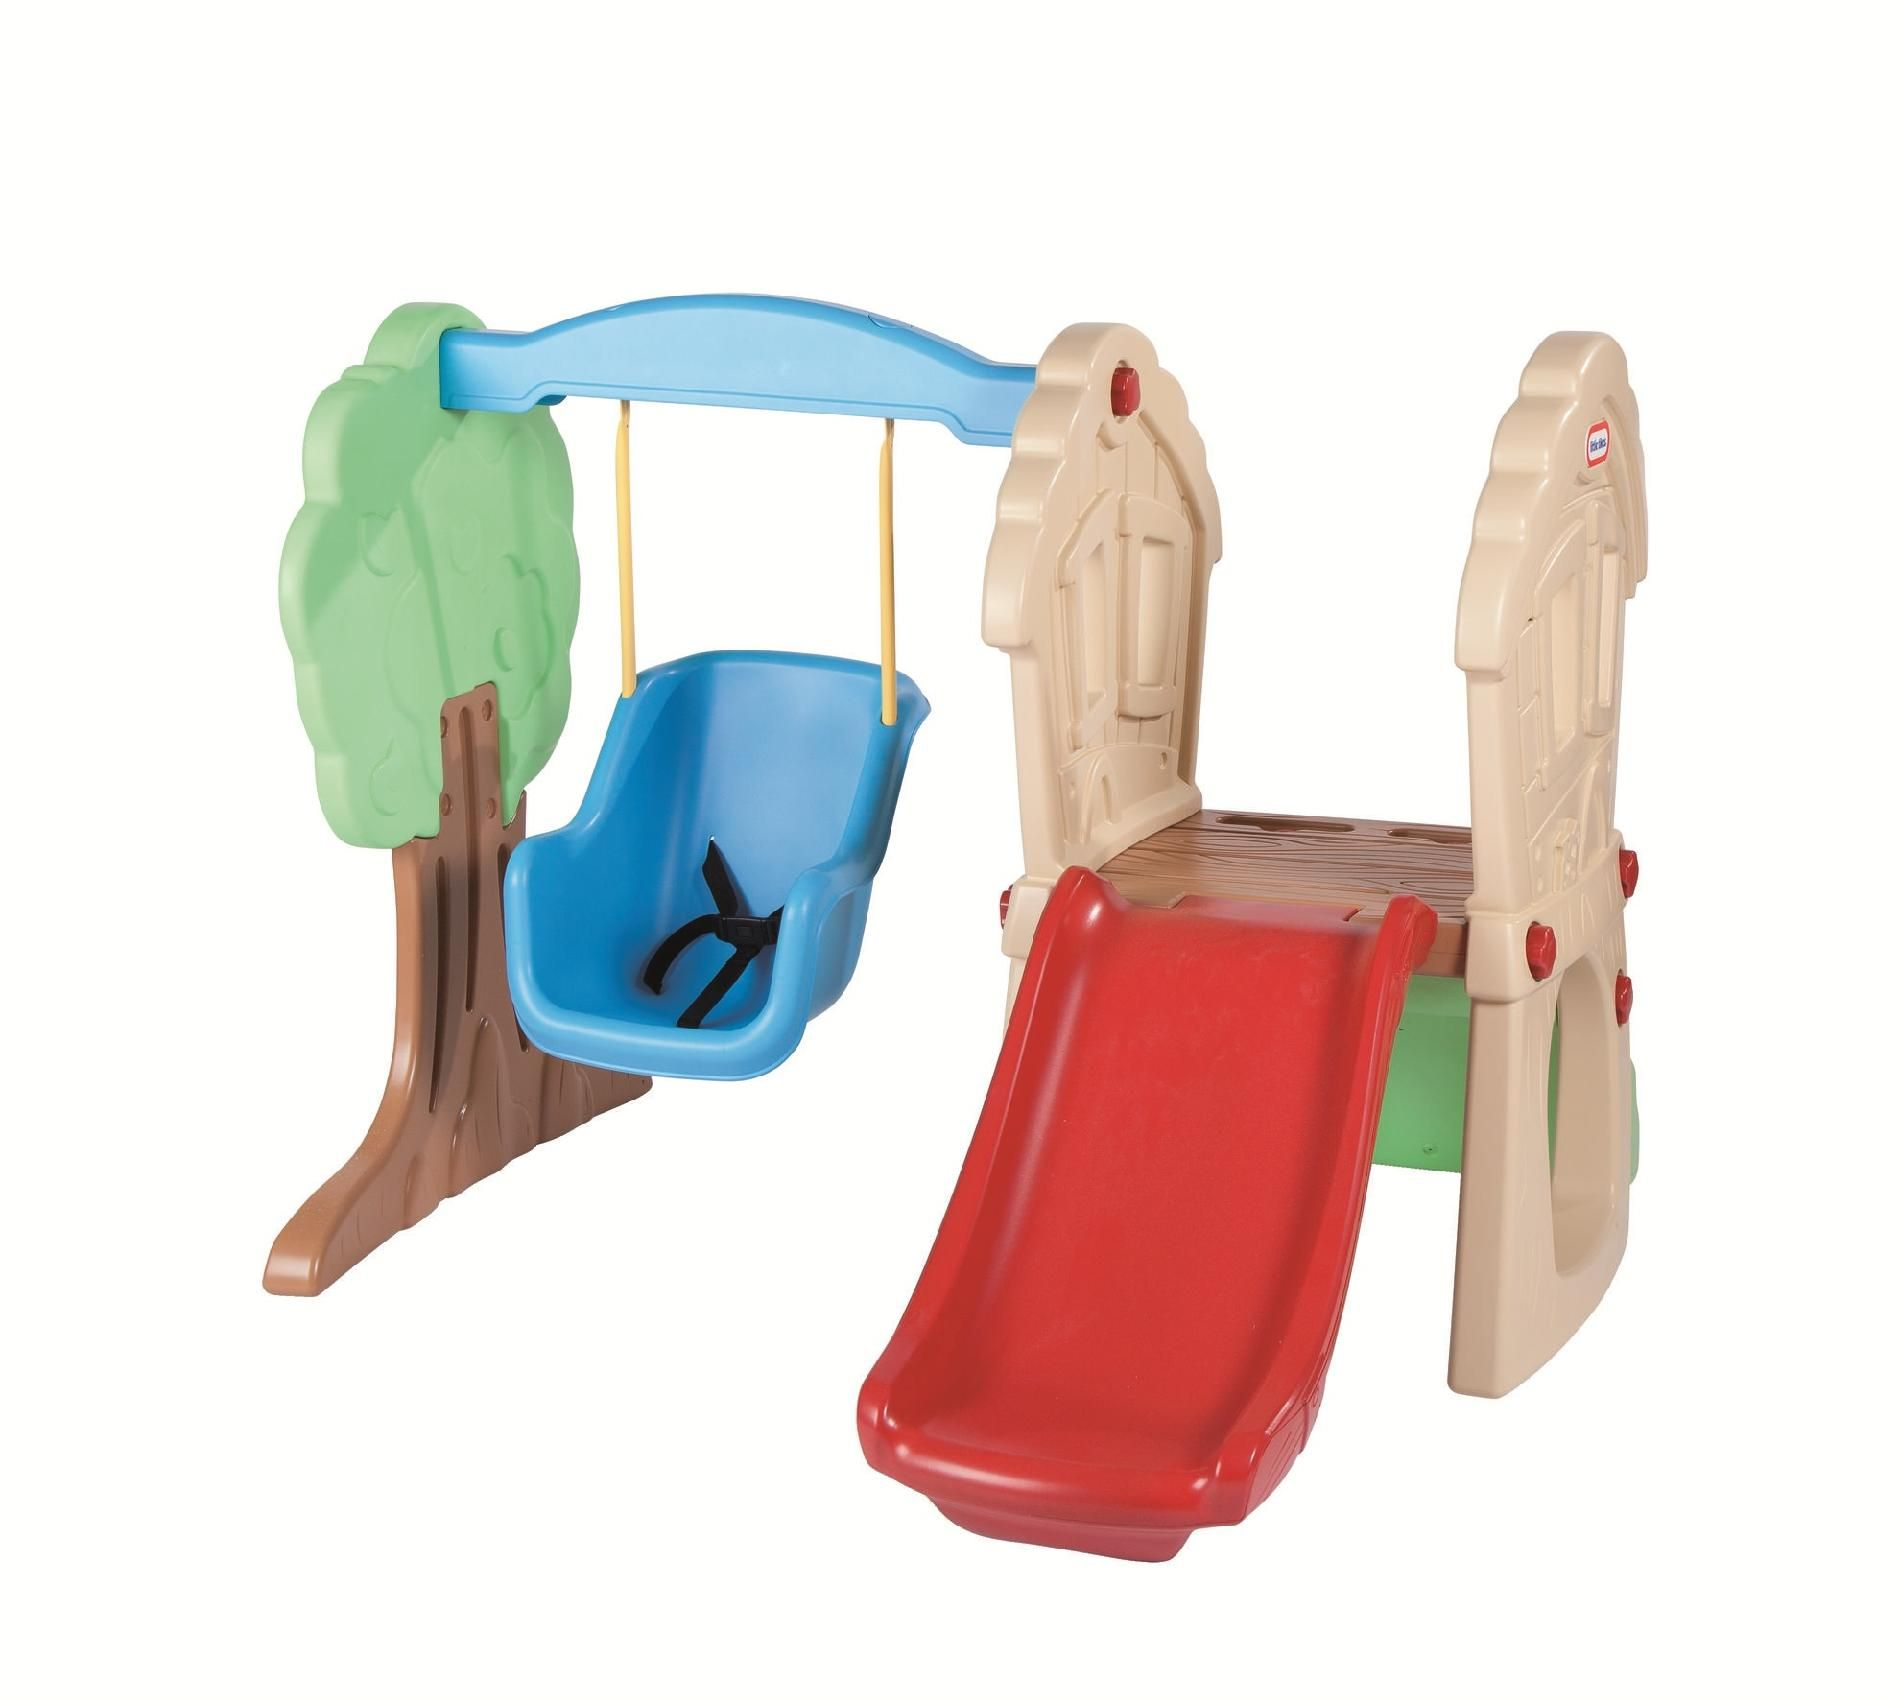 Little Tikes Climber And Swing Playground Fun Inside Or Out